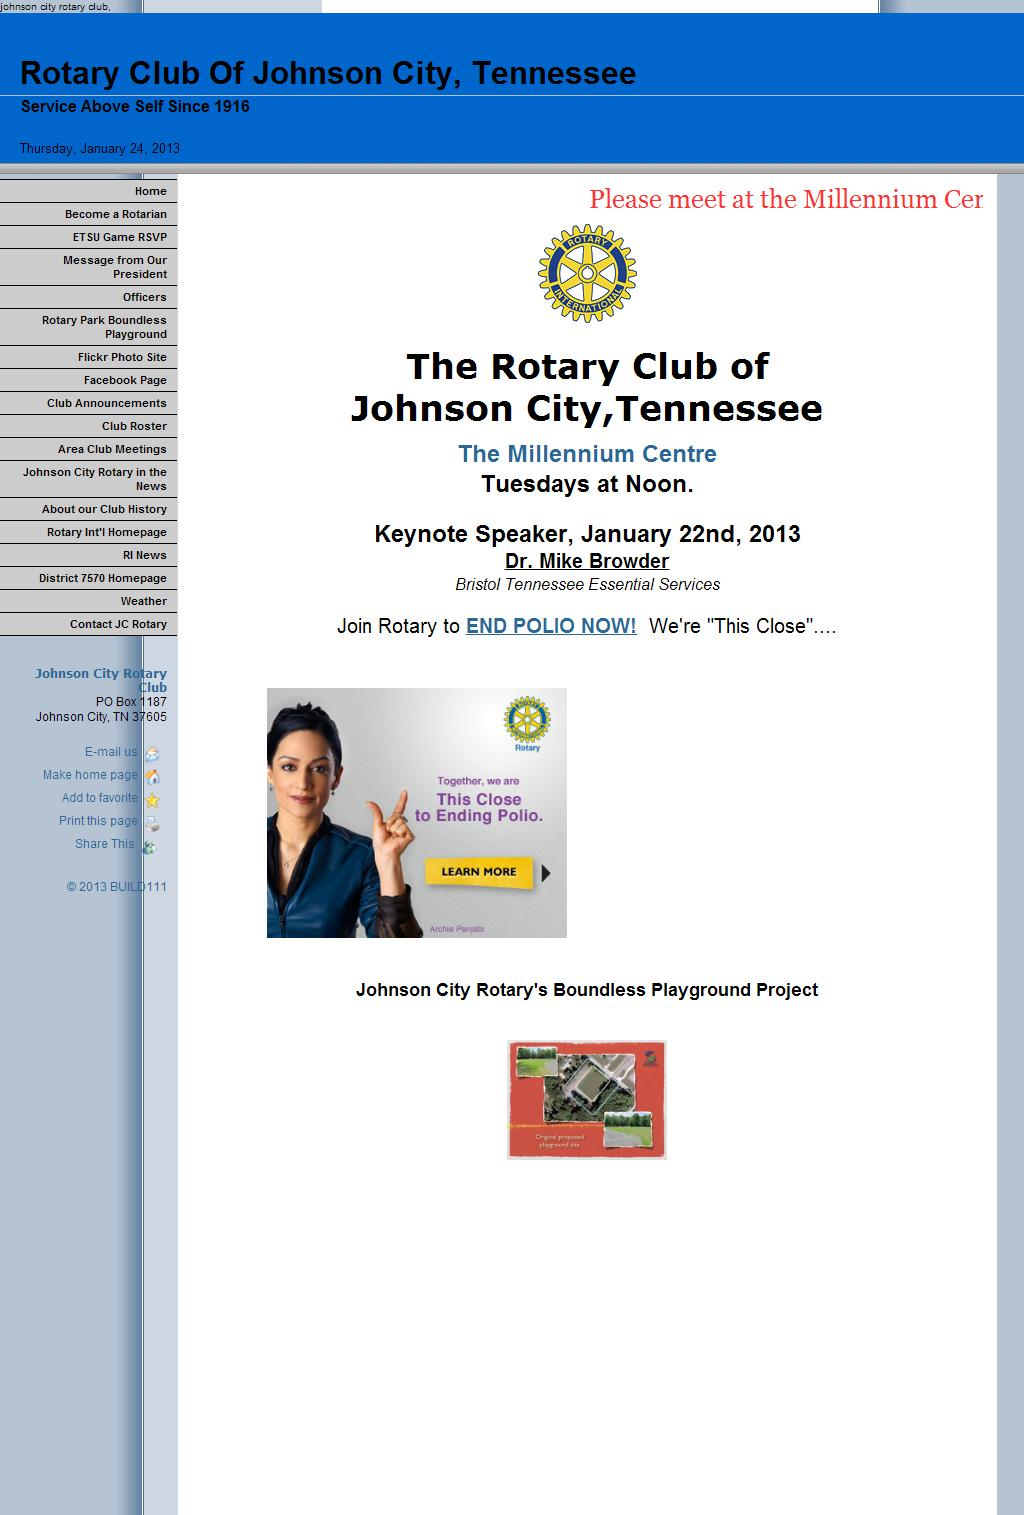 Johnson City Rotary Club